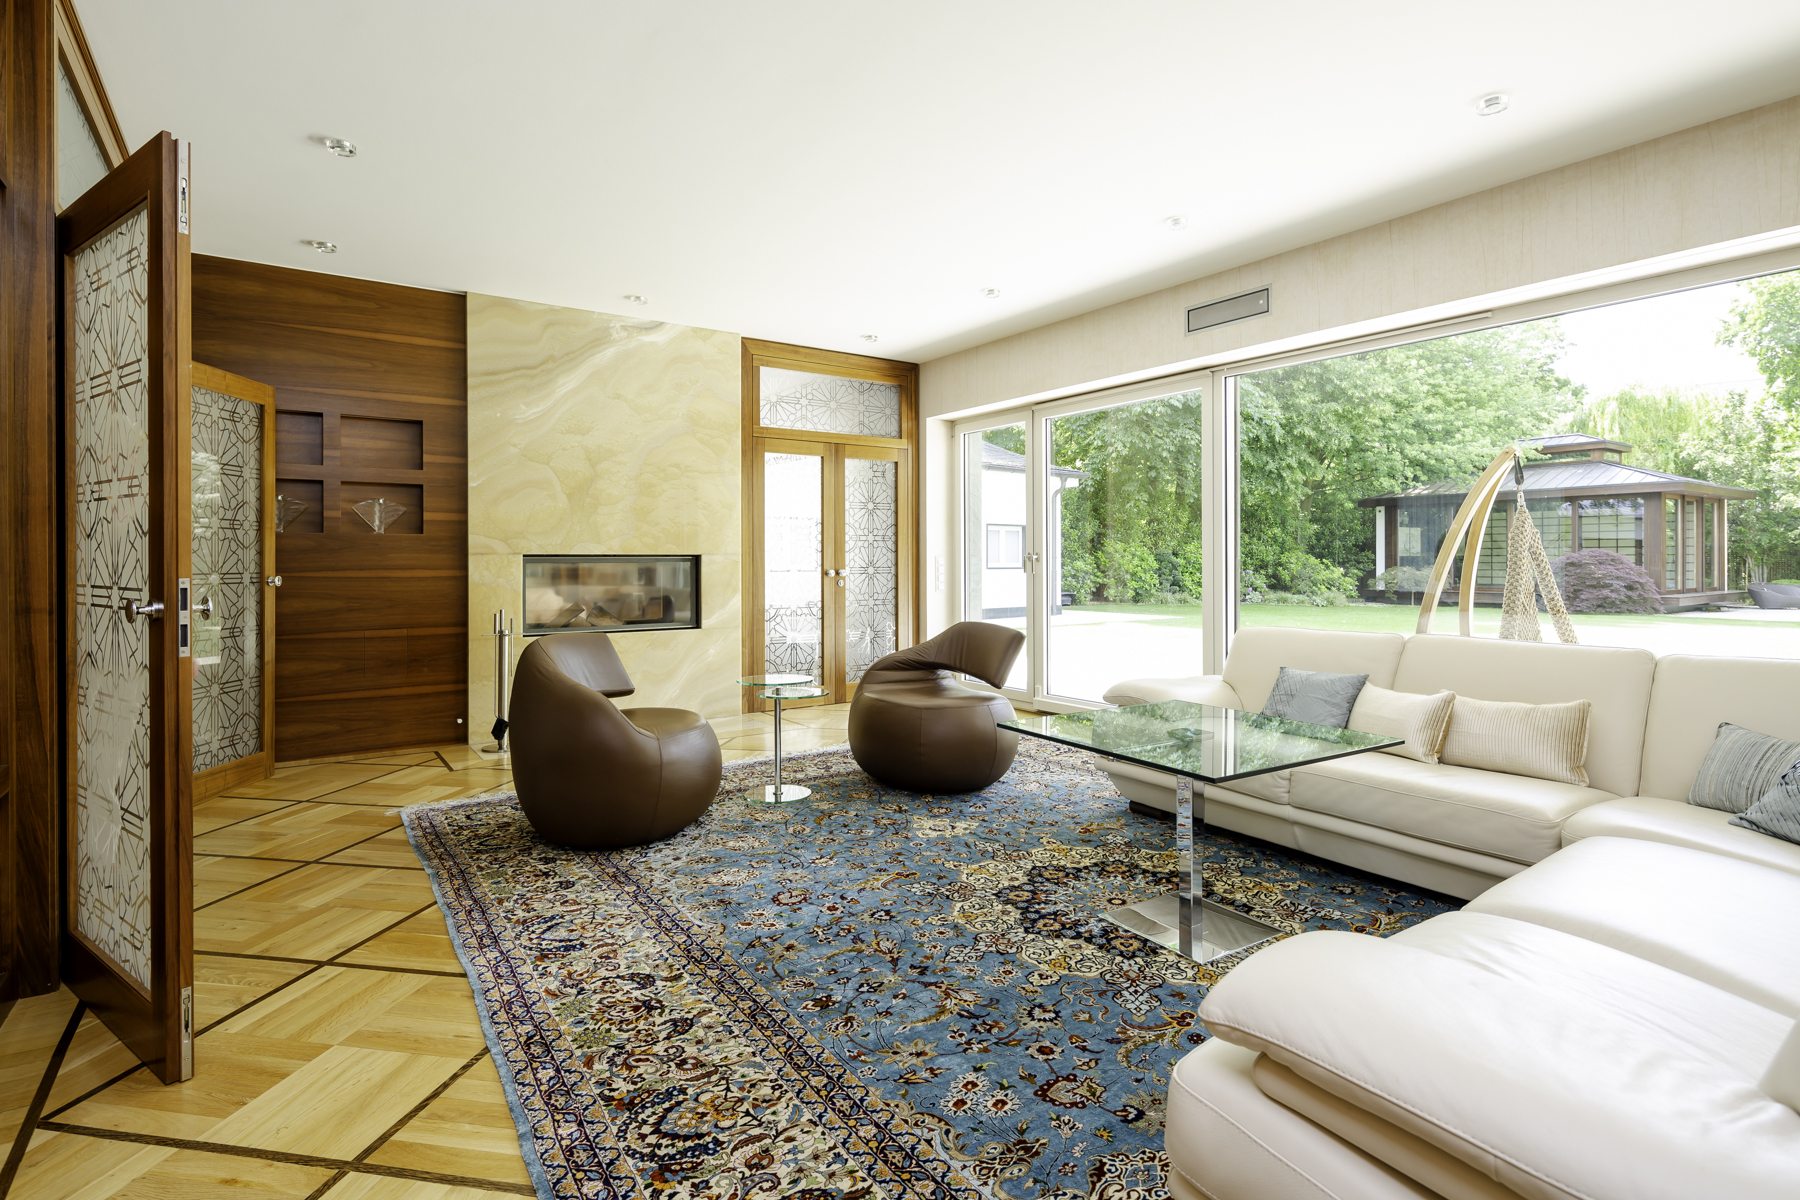 """Single Family Homes for Sale at Luxurious property in the """"Diplomats' Quarter Frankfurt, Hessen 60487 Germany"""